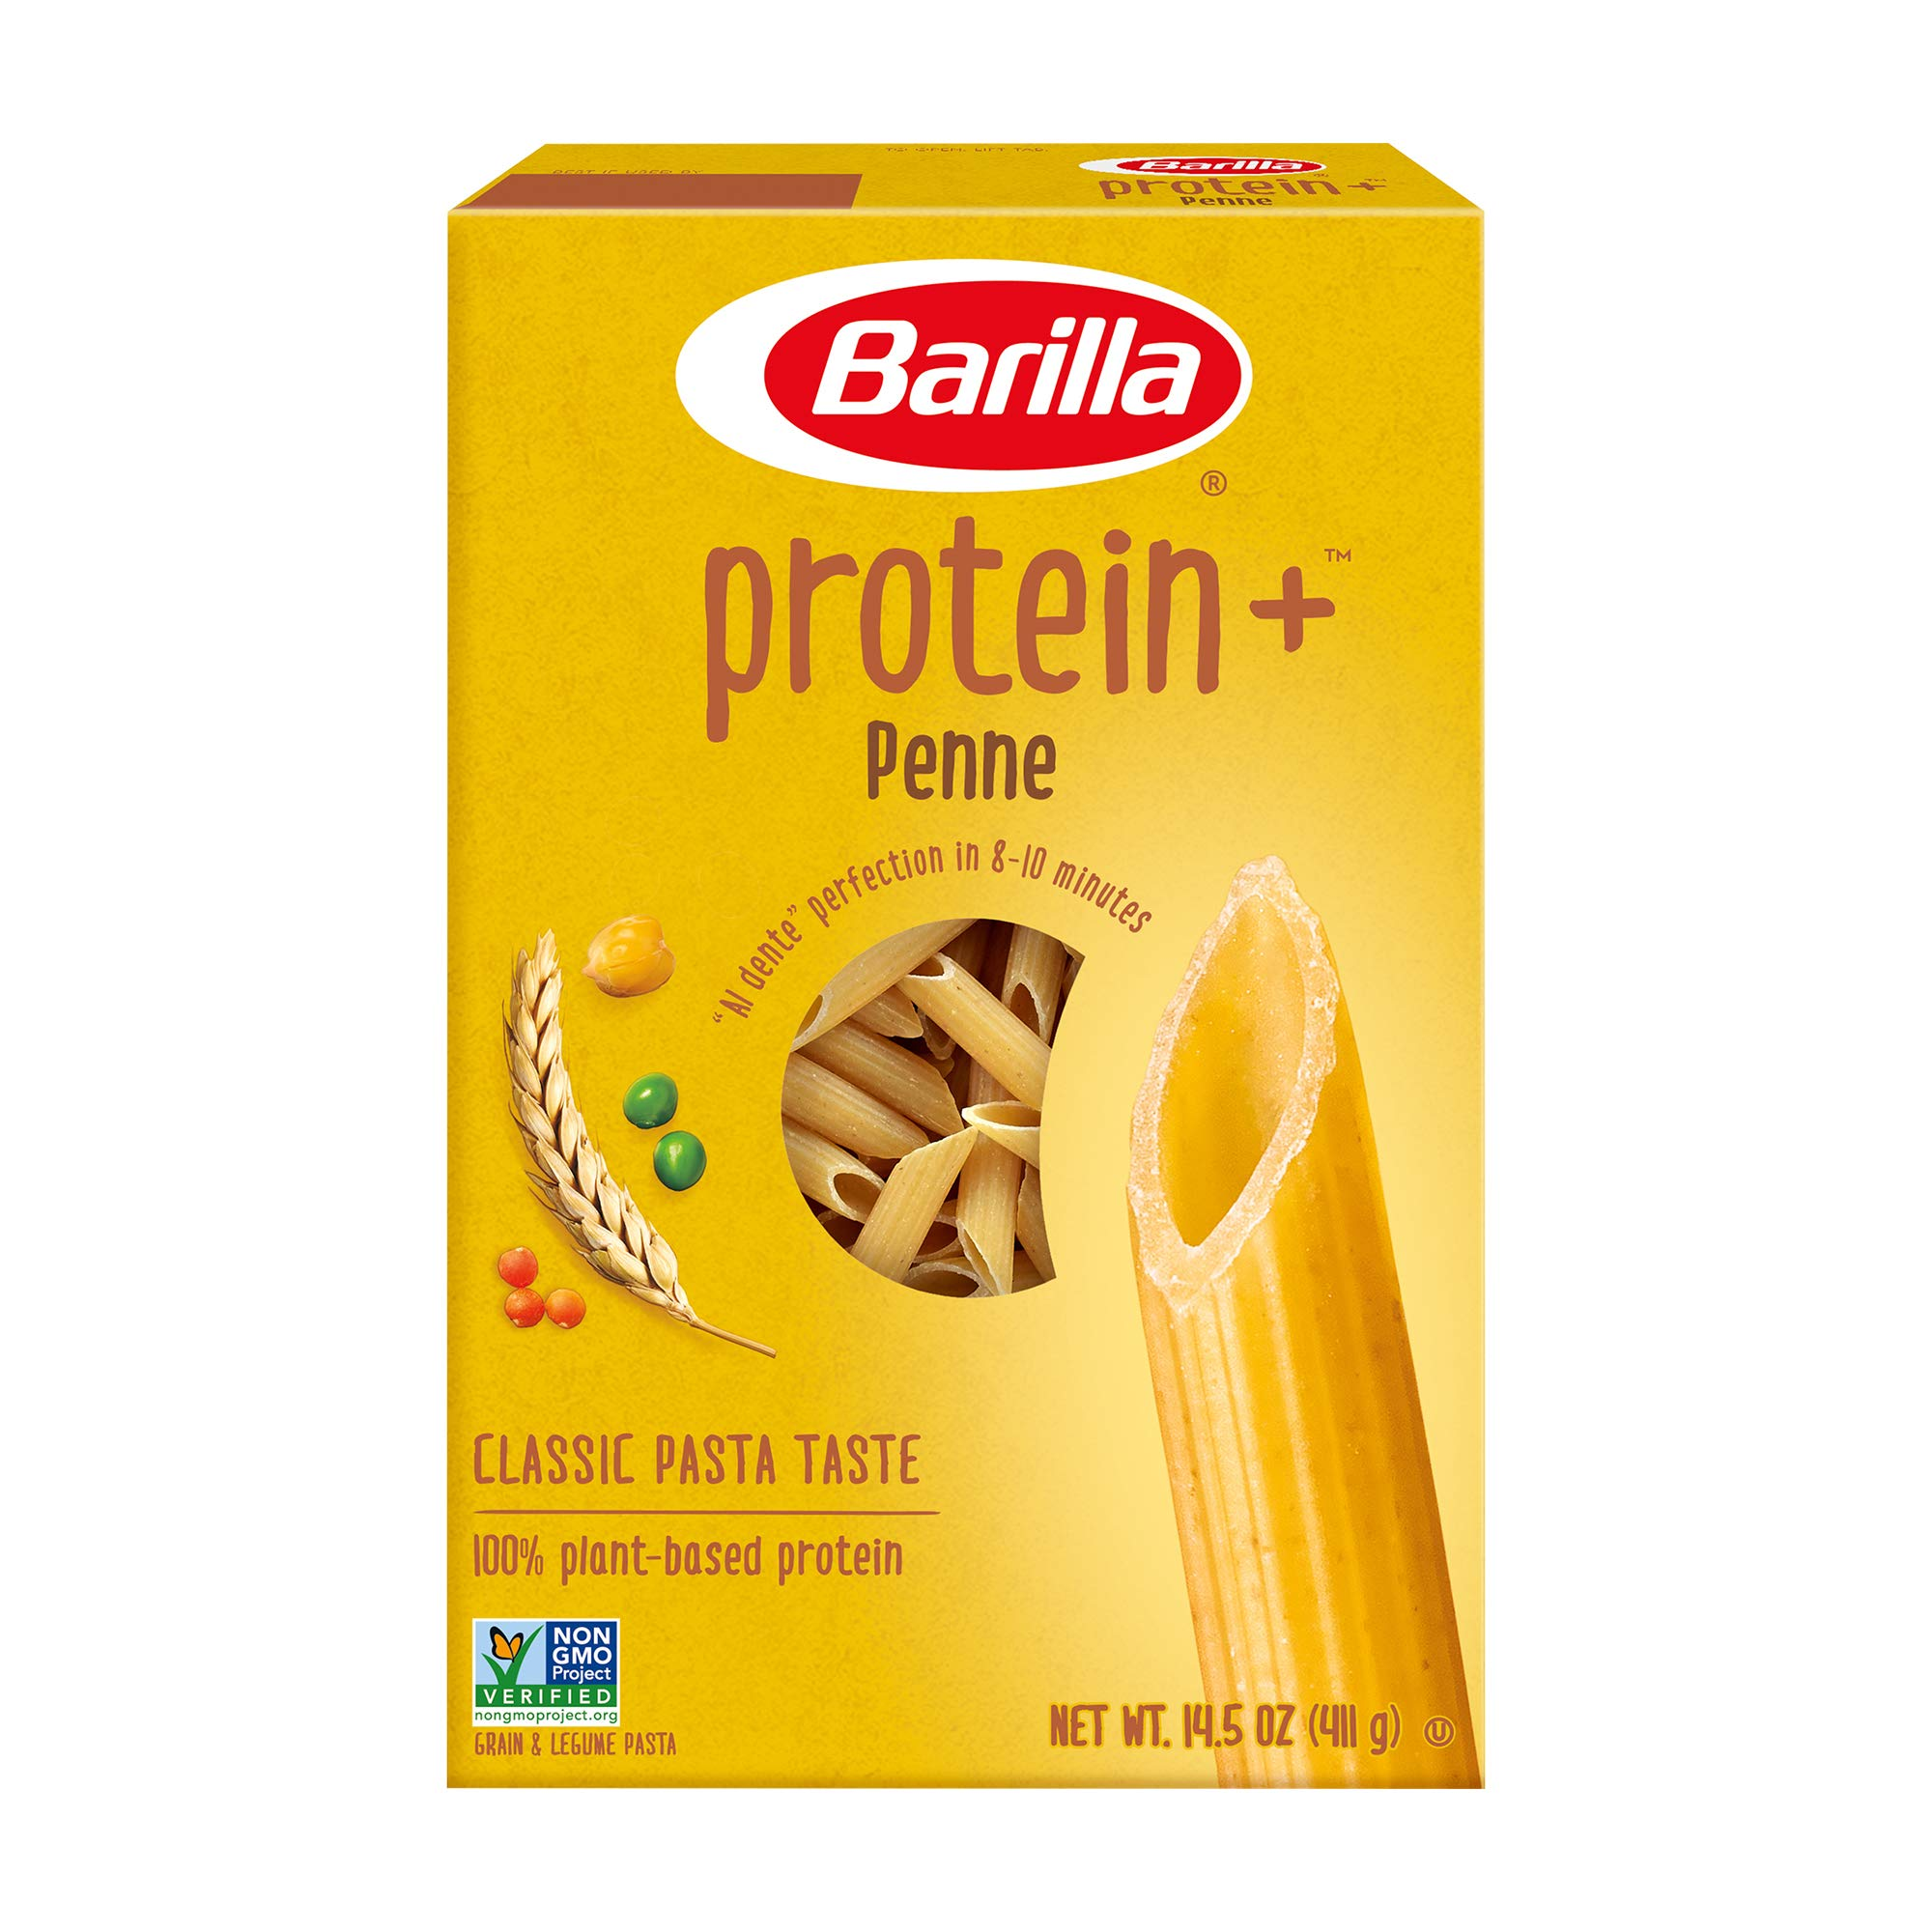 BARILLA Protein+ (Plus) Penne Pasta - Protein from Lentils, Chickpeas & Peas - Good Source of Plant-Based Protein - Protein Pasta - Non-GMO - Kosher Certified - 14.5 Ounce Box (7 Servings per Box)